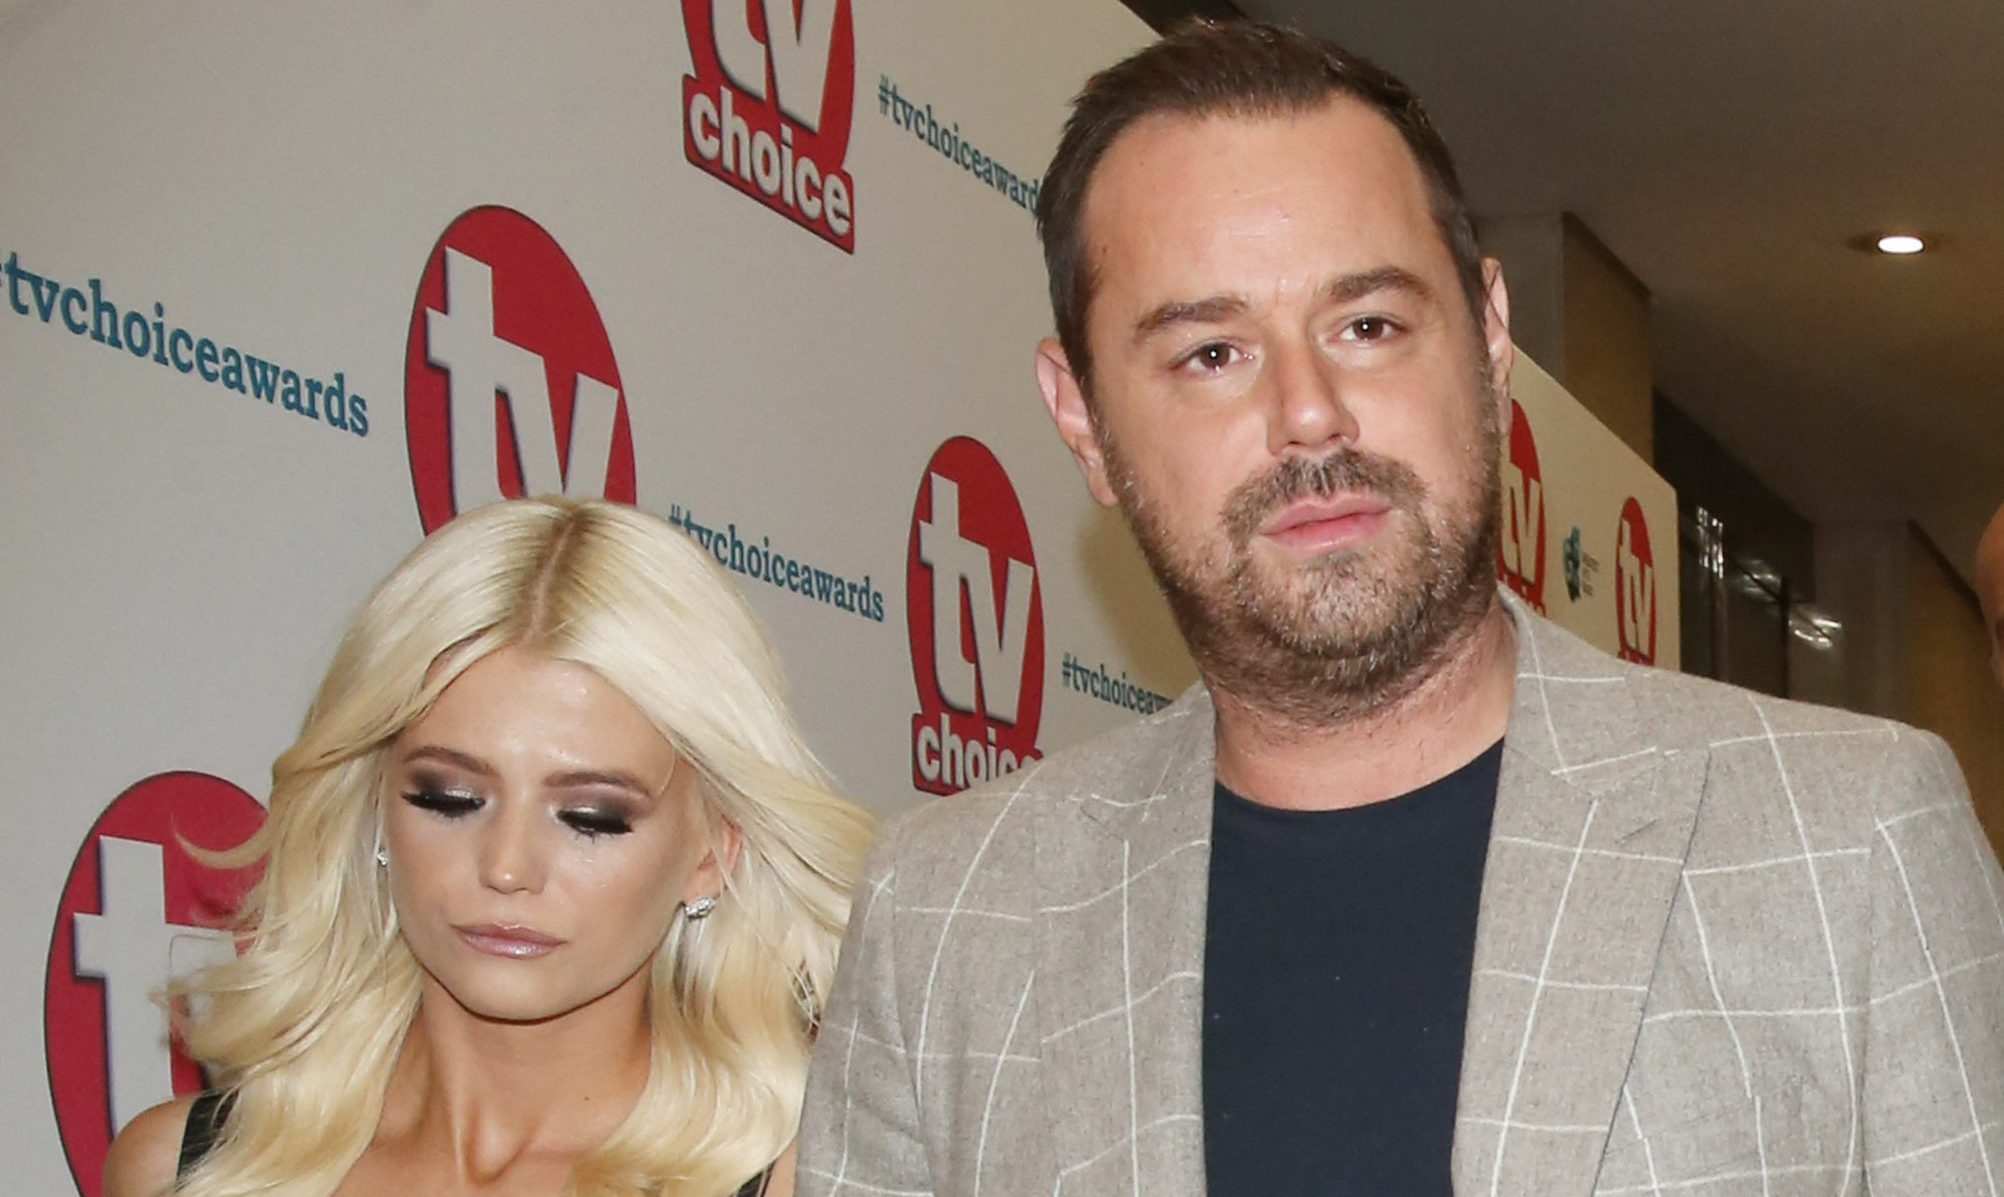 Danny Dyer rubbishes claims of row with co-star Danielle Harold